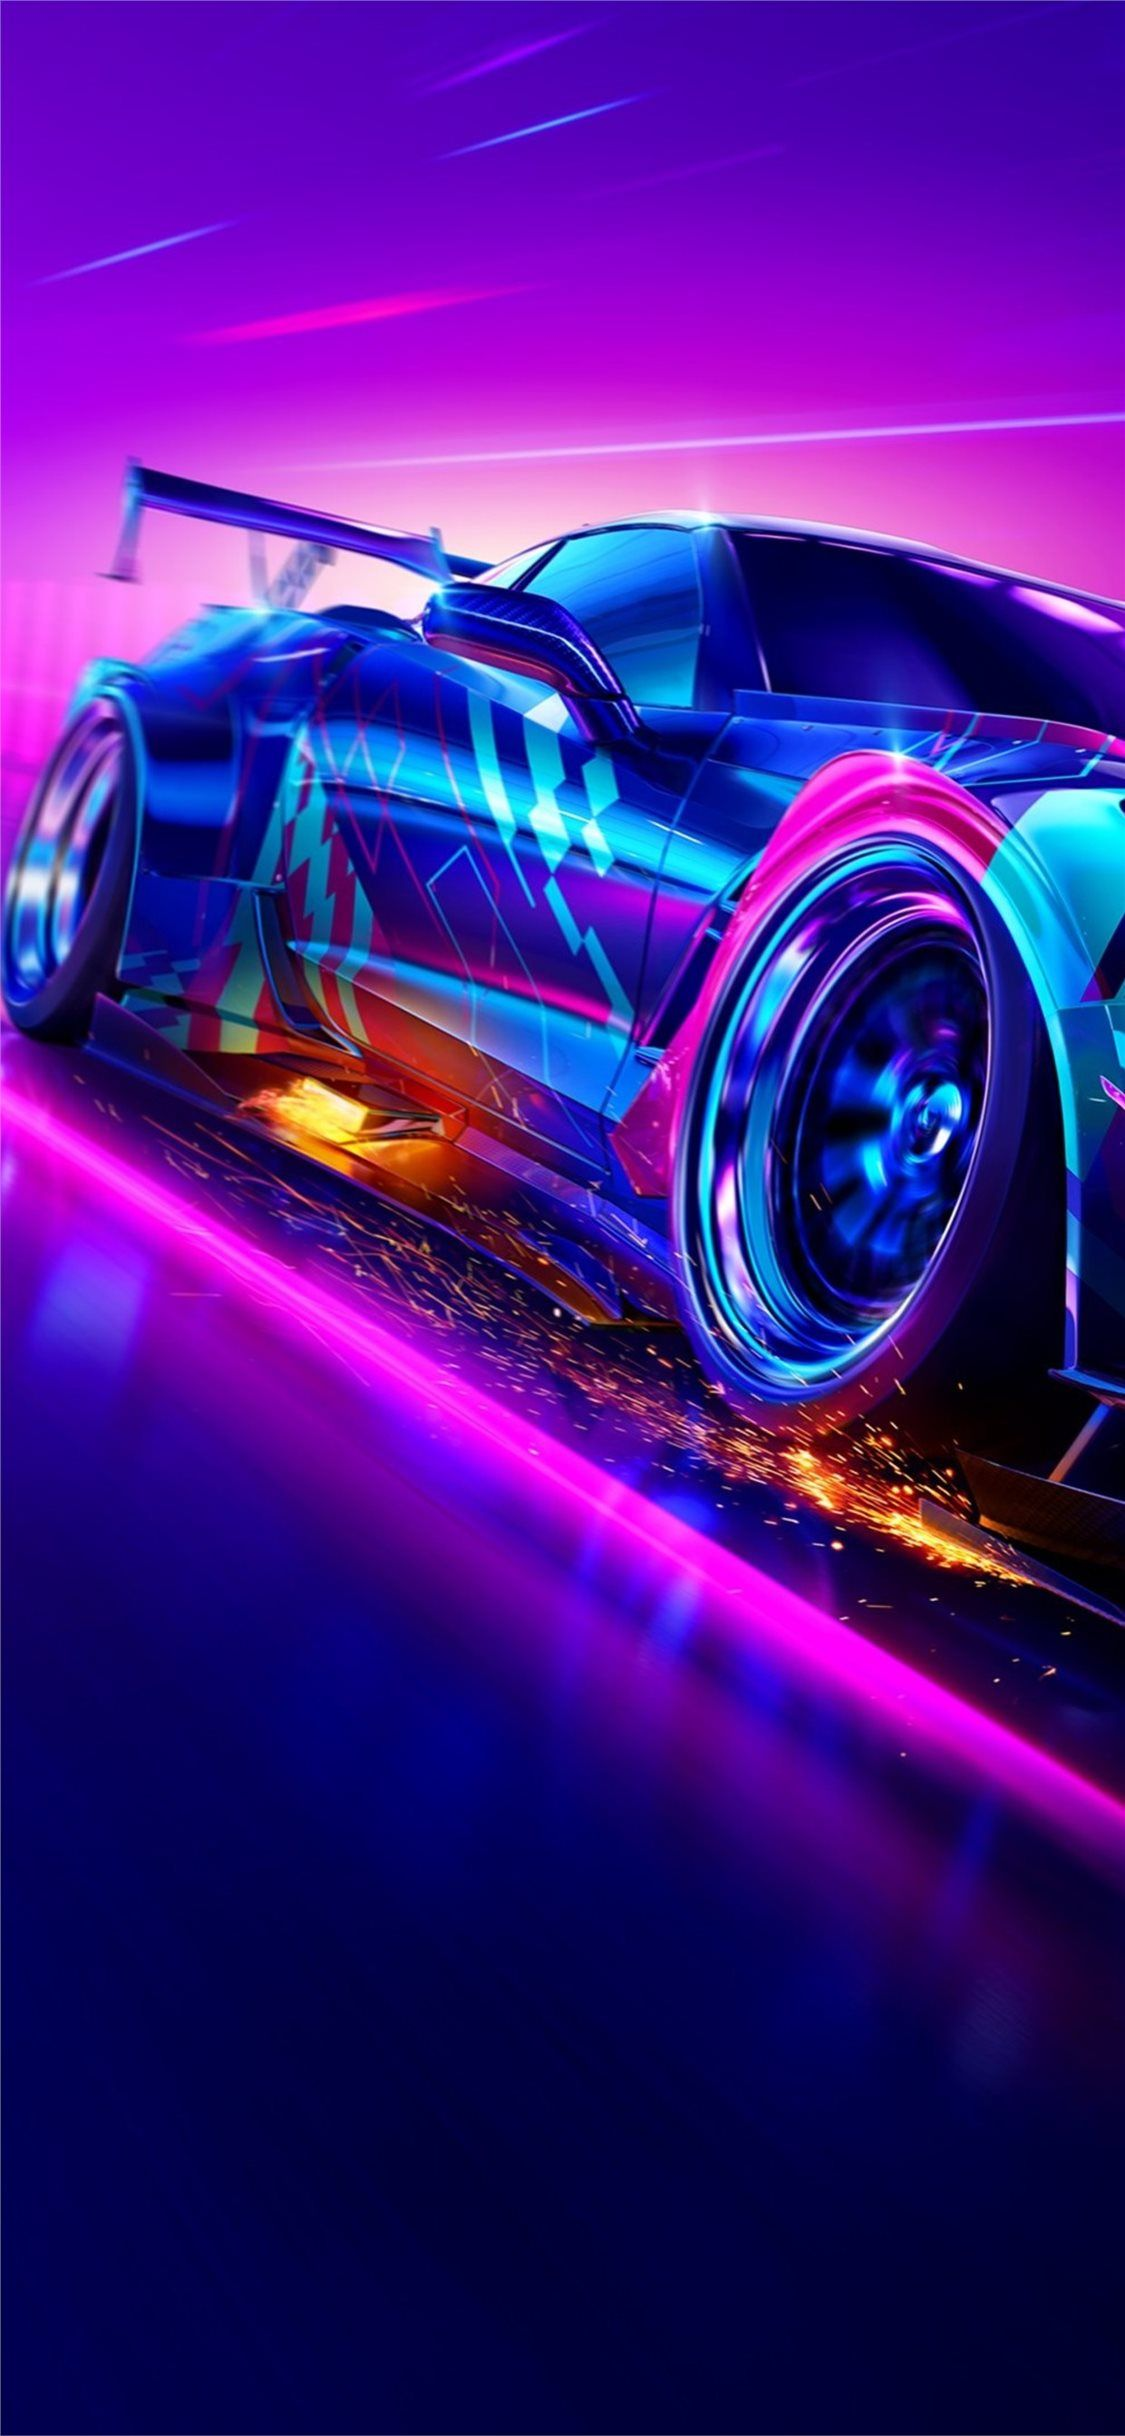 need for speed heat 2019 4k iPhone X Wallpapers Carros